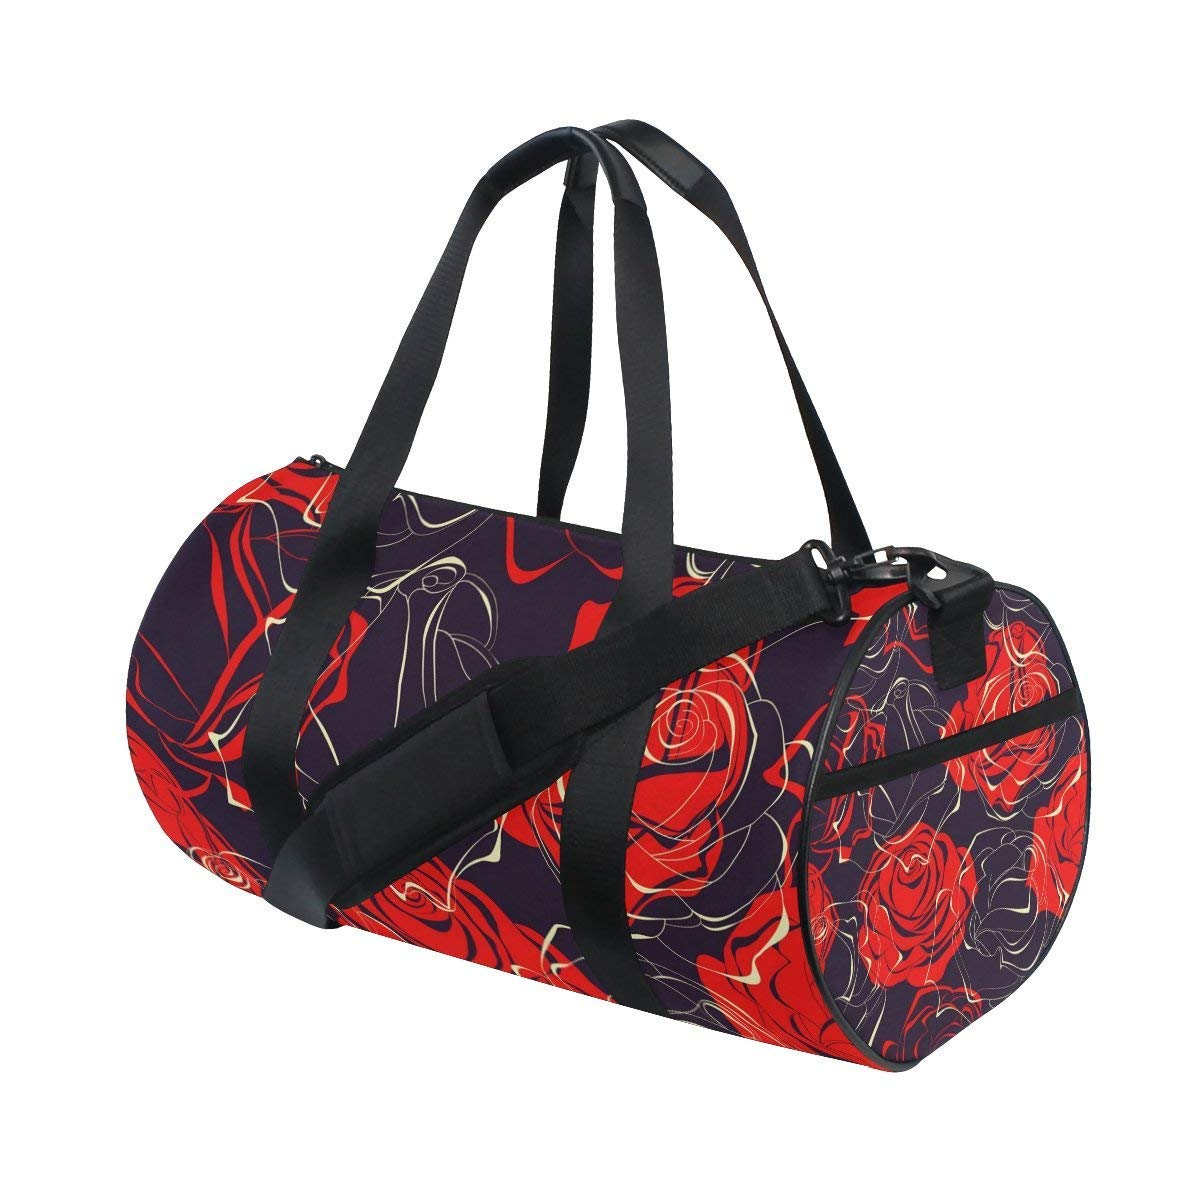 OuLian Gym Duffel Bag Red Rose Sports Lightweight Canvas Travel Luggage Bag